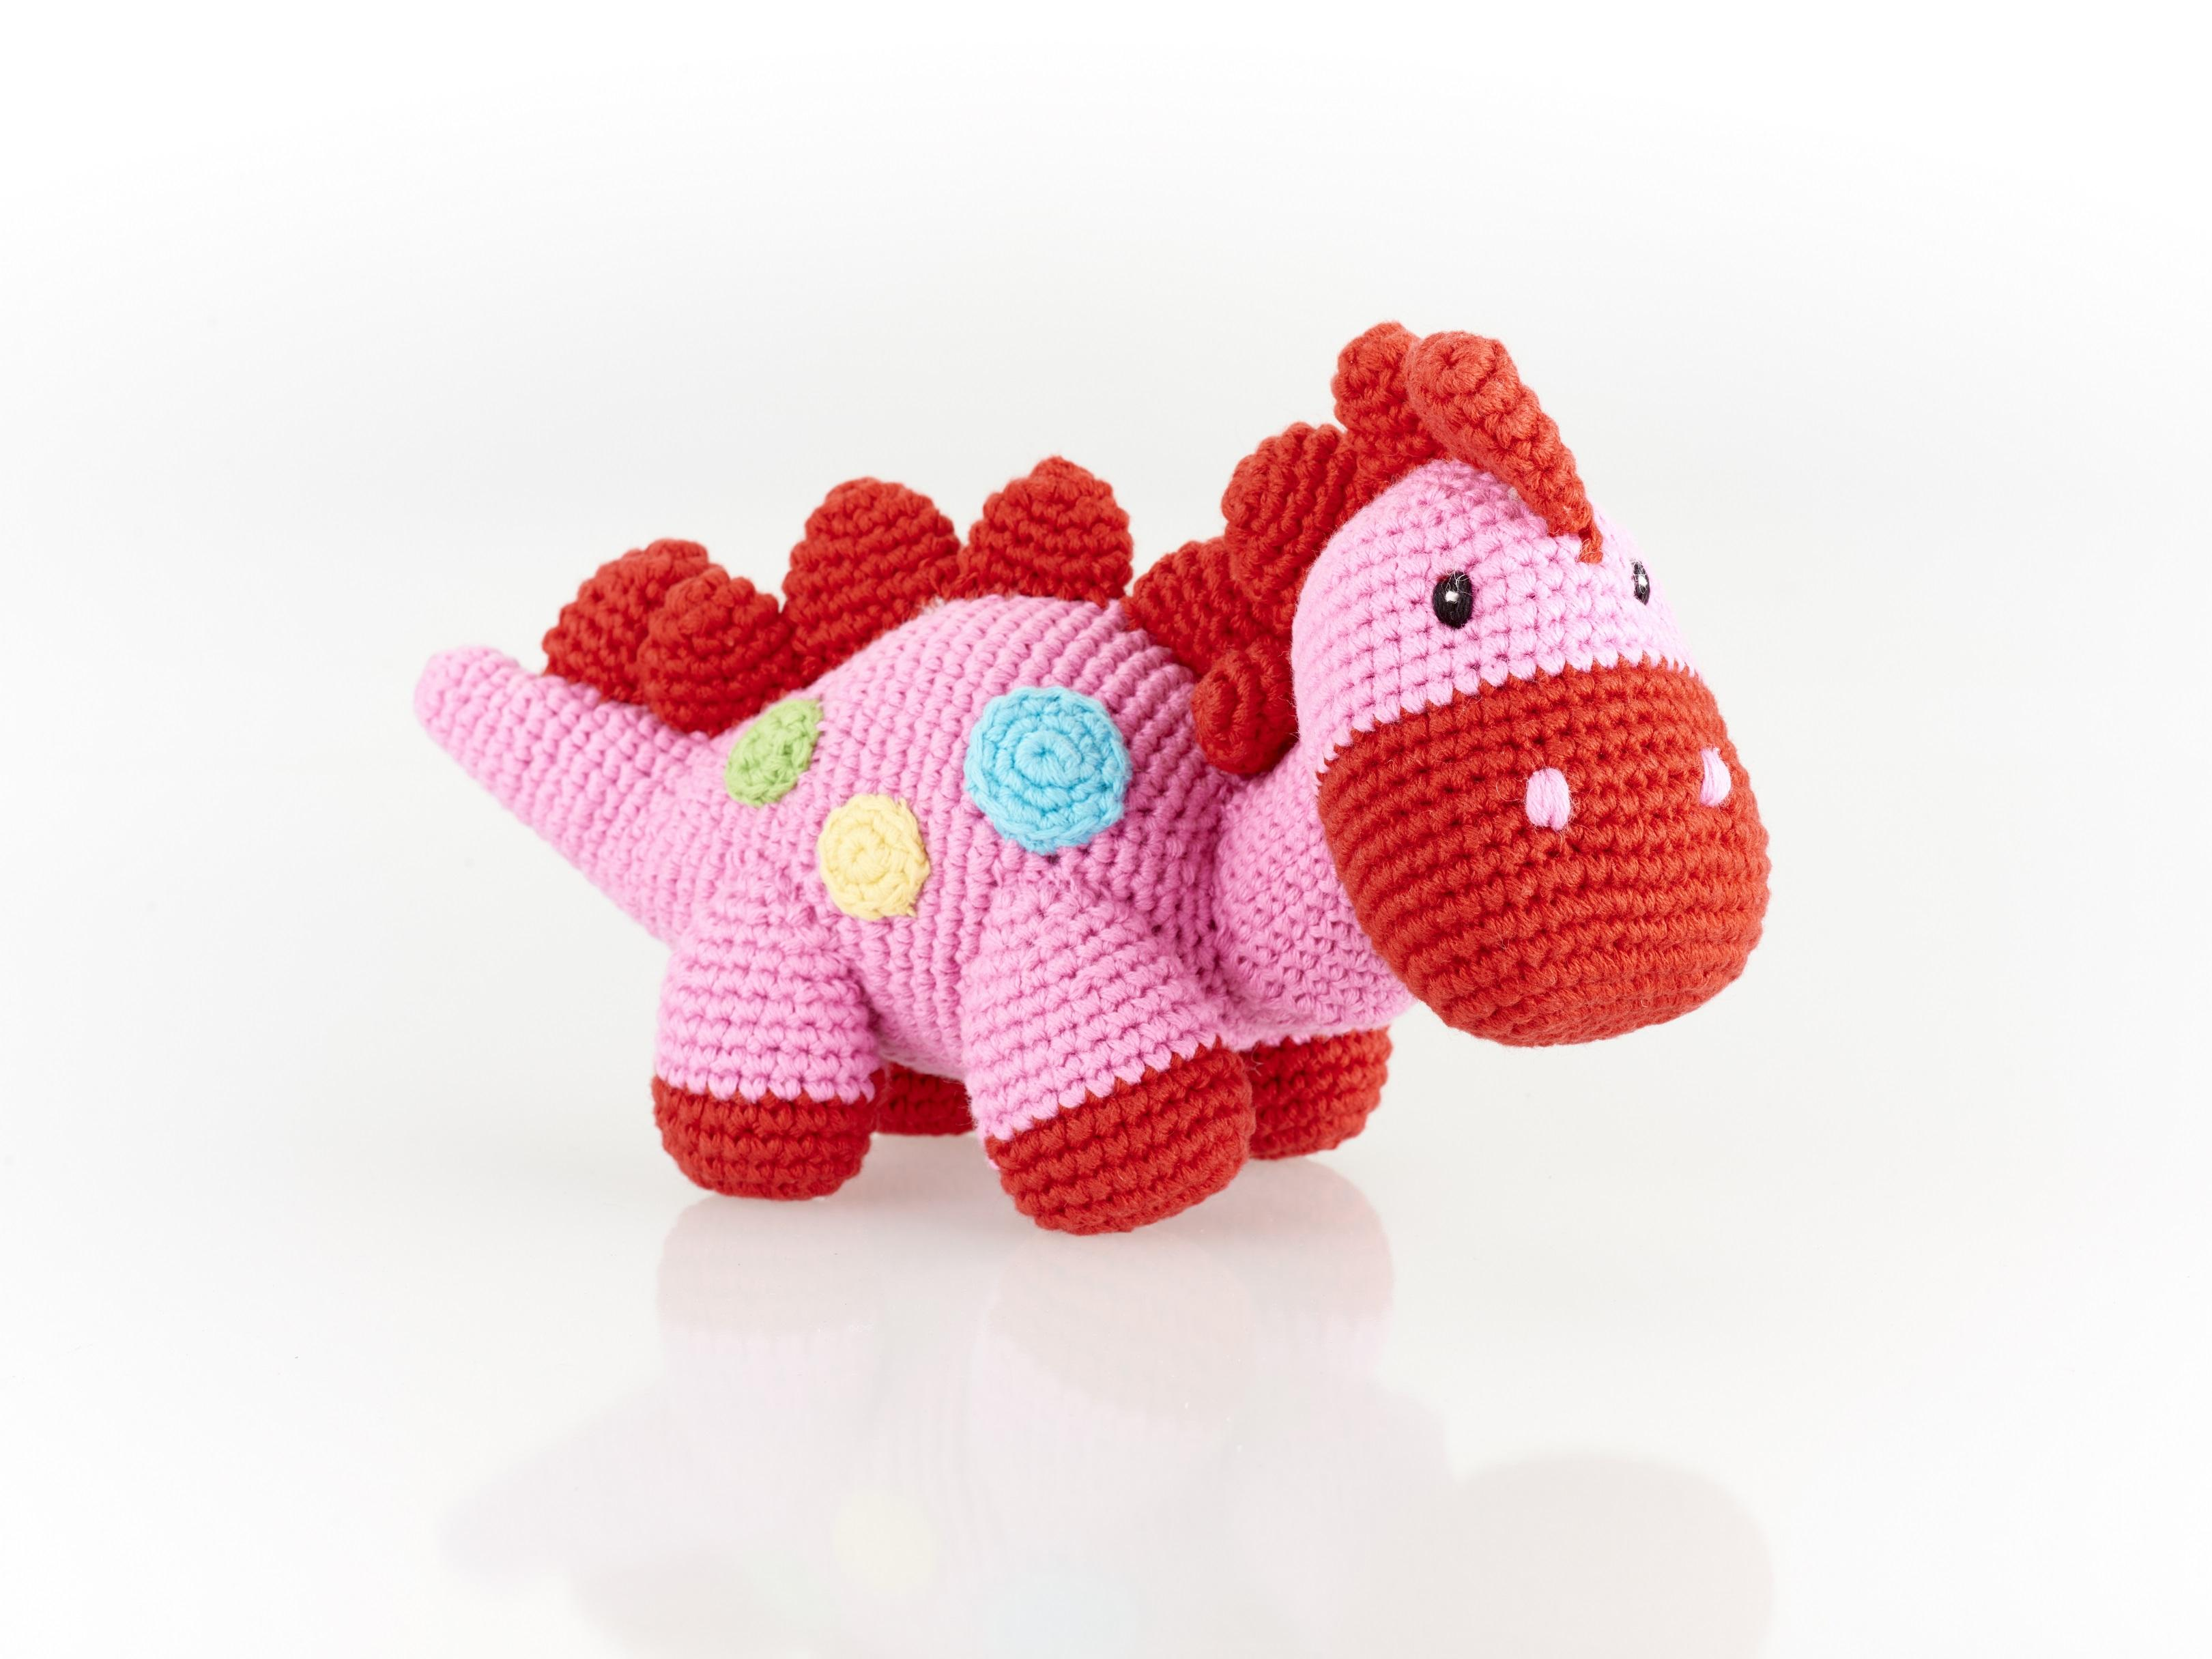 fair trade crochet cotton pink dinosaur baby rattle